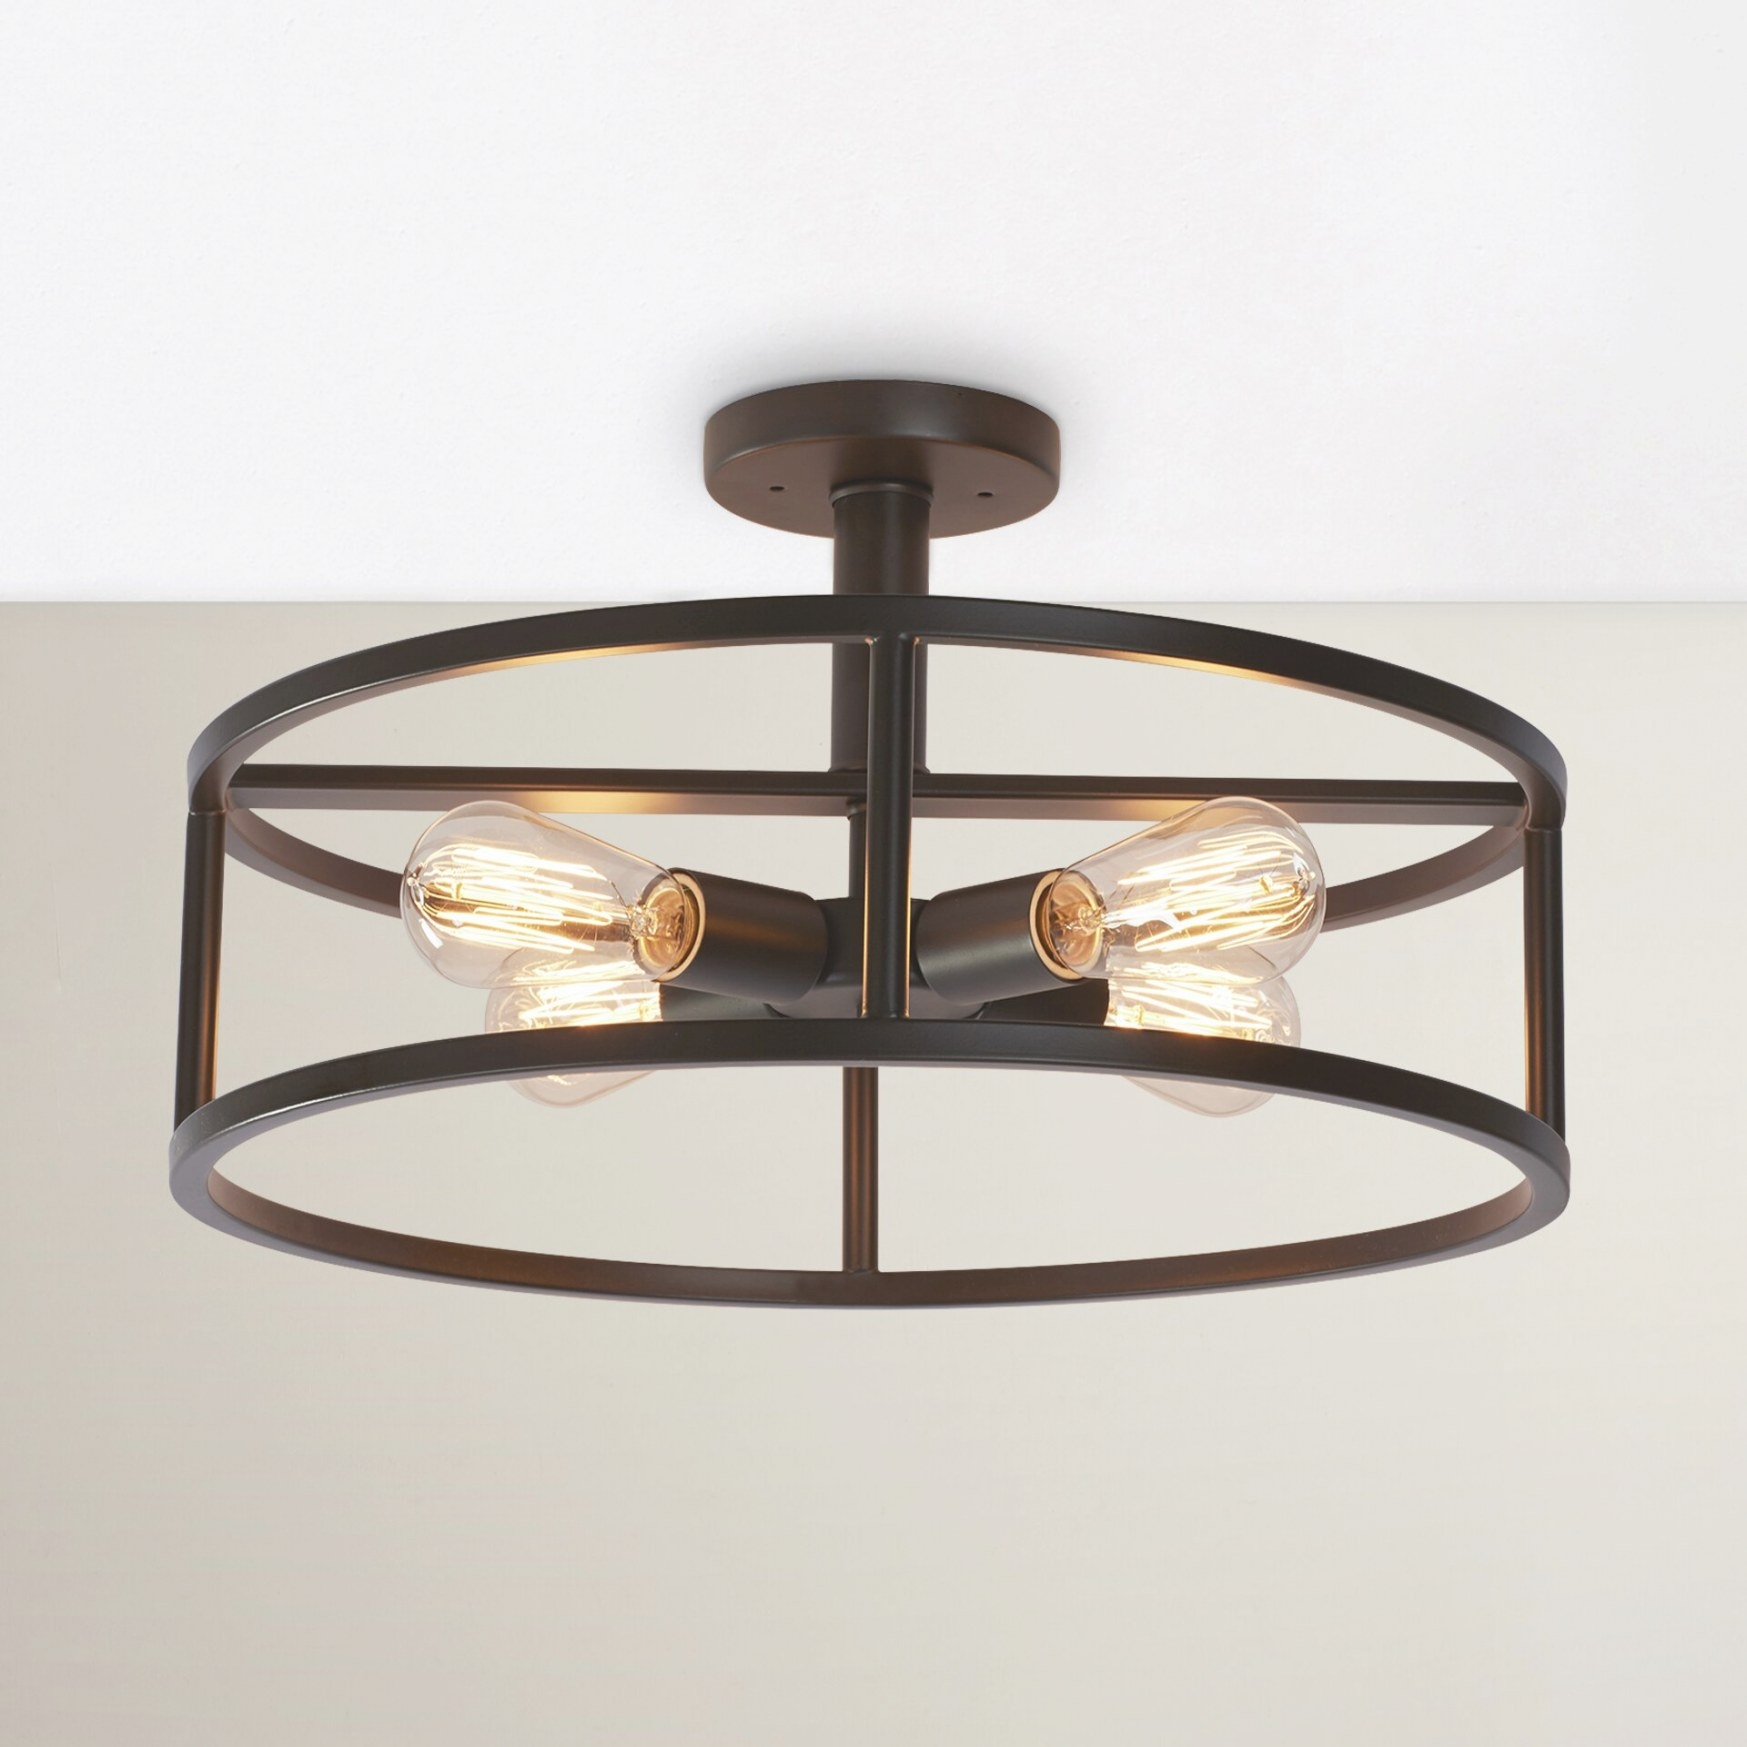 Brayden Studio Sargeant 4 Light Semi Flush Mount & Reviews pertaining to Flush Mount Ceiling Lights